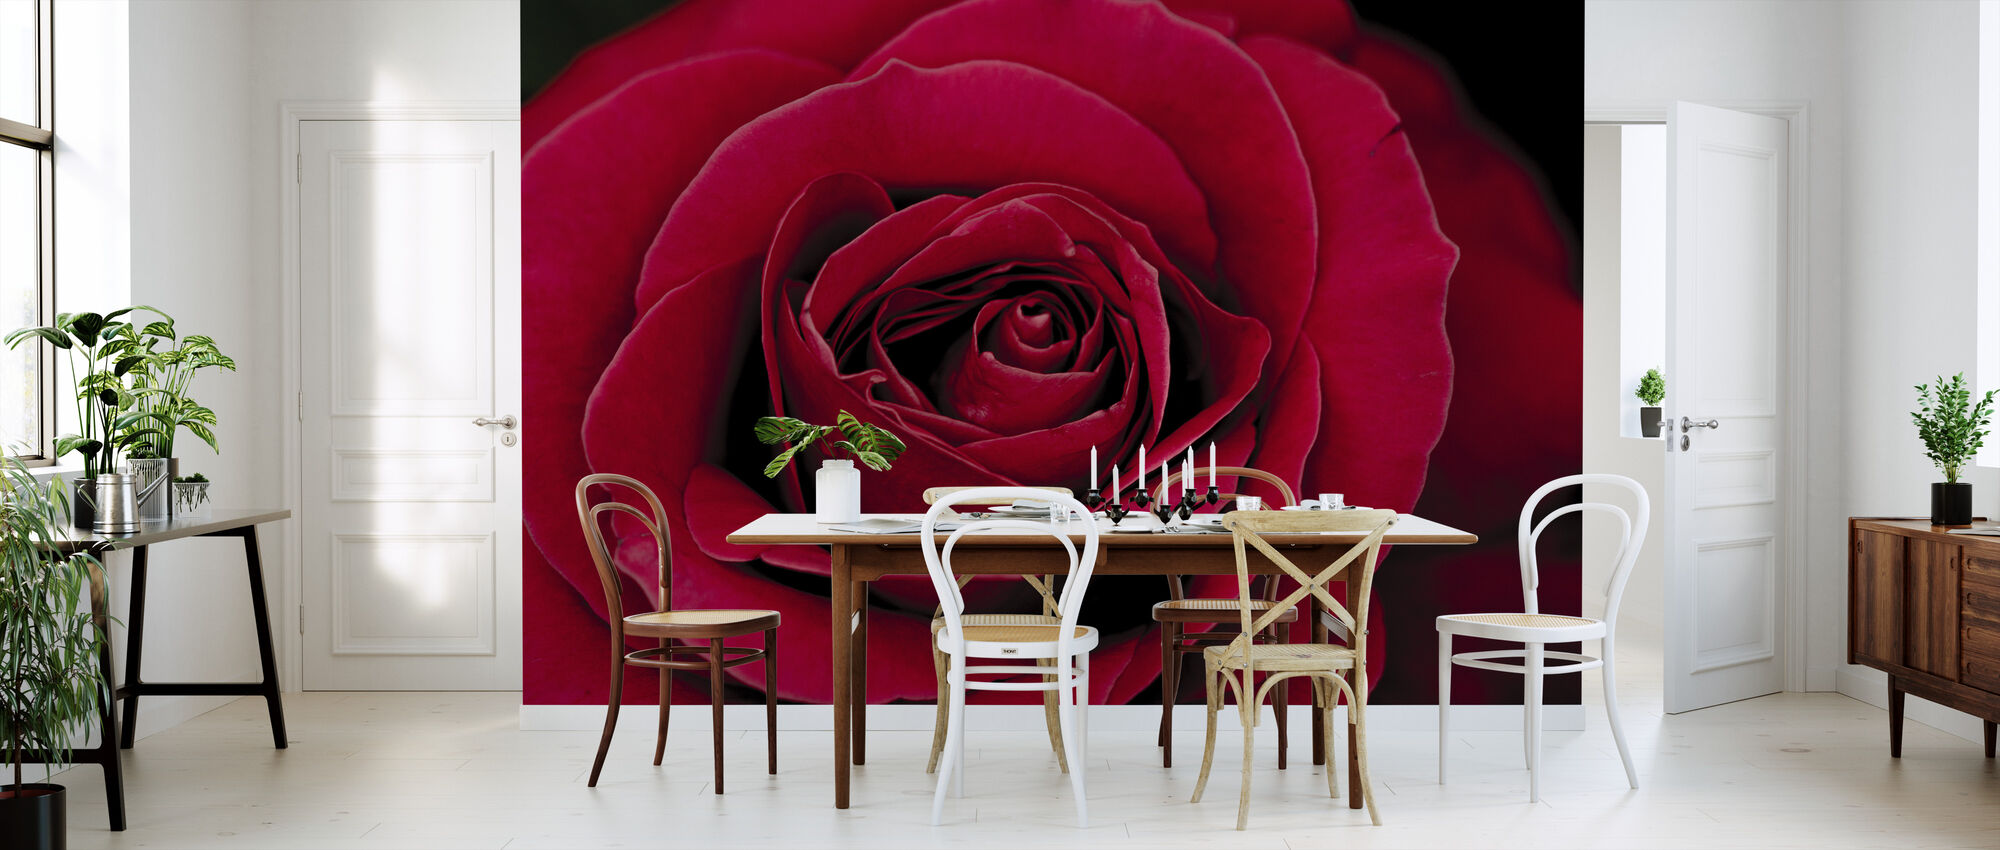 Red Rose - Wallpaper - Kitchen